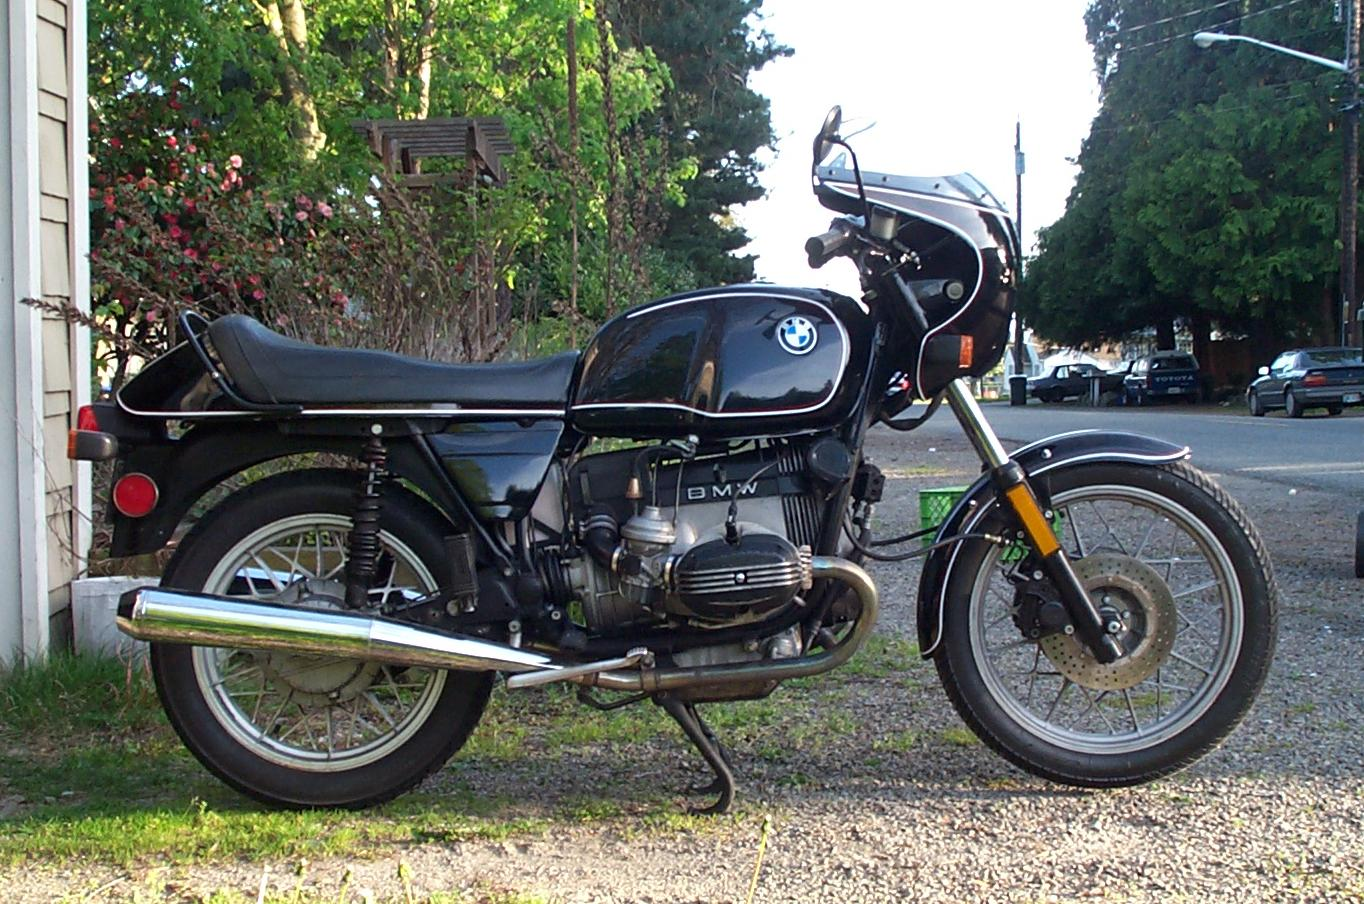 Bmw Used For Sale >> 1983 BMW R100S, 1 out of 1